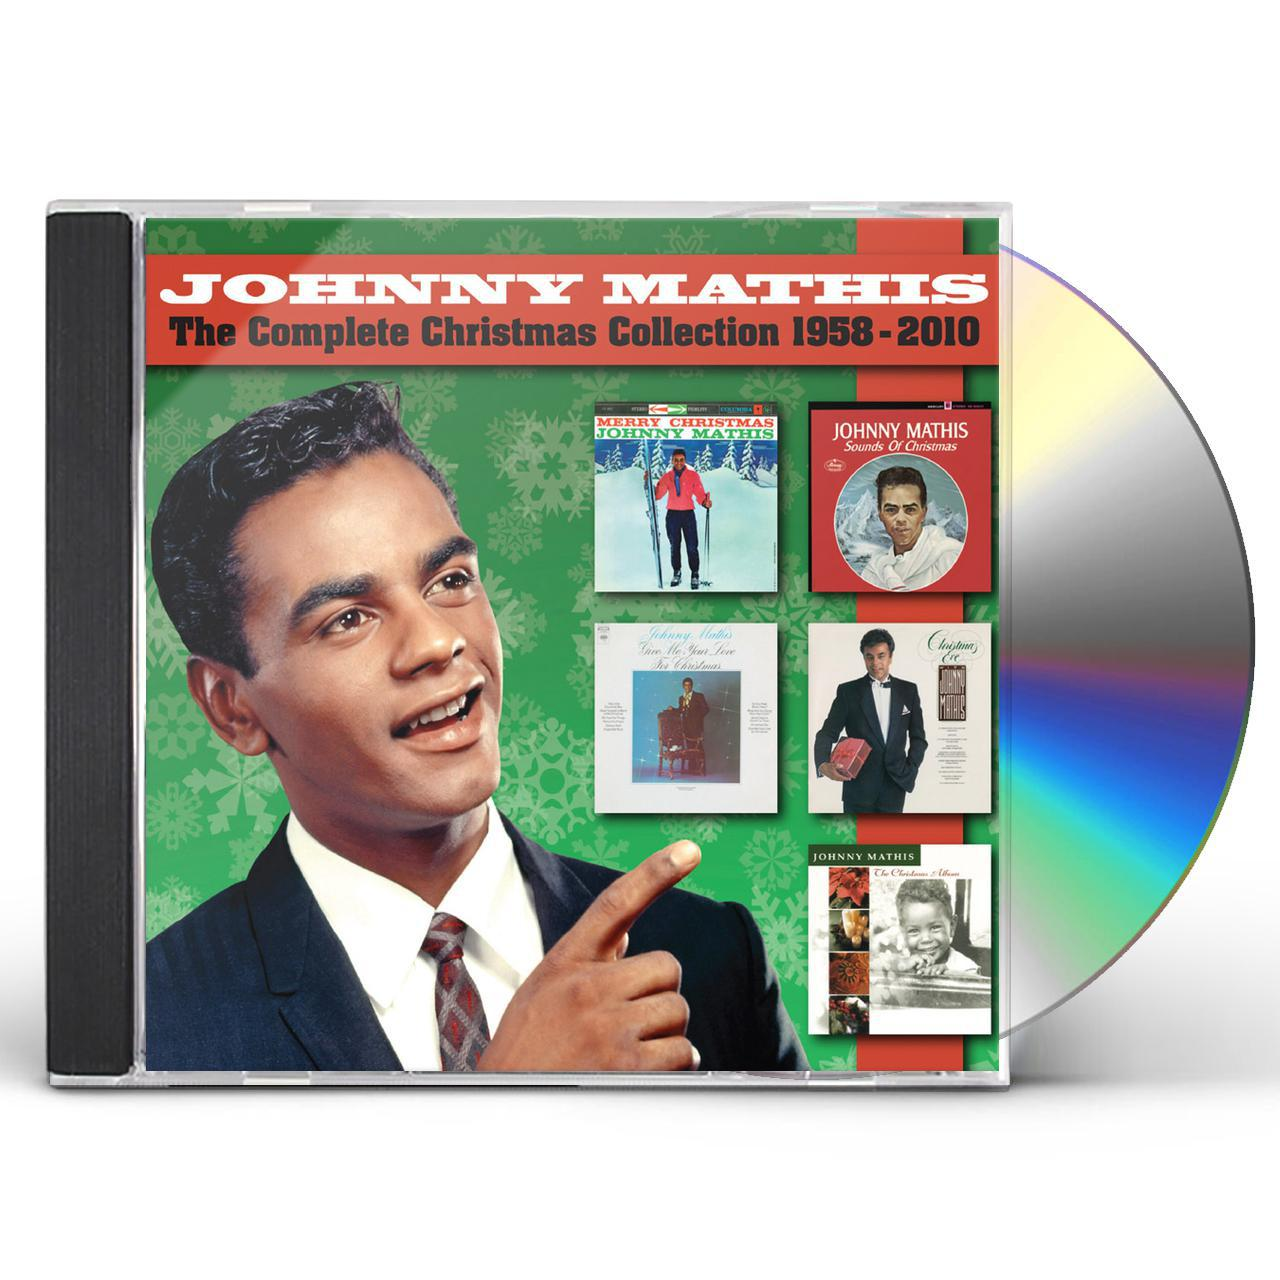 Johnny Mathis COMPLETE CHRISTMAS COLLECTION 1958-2010 CD